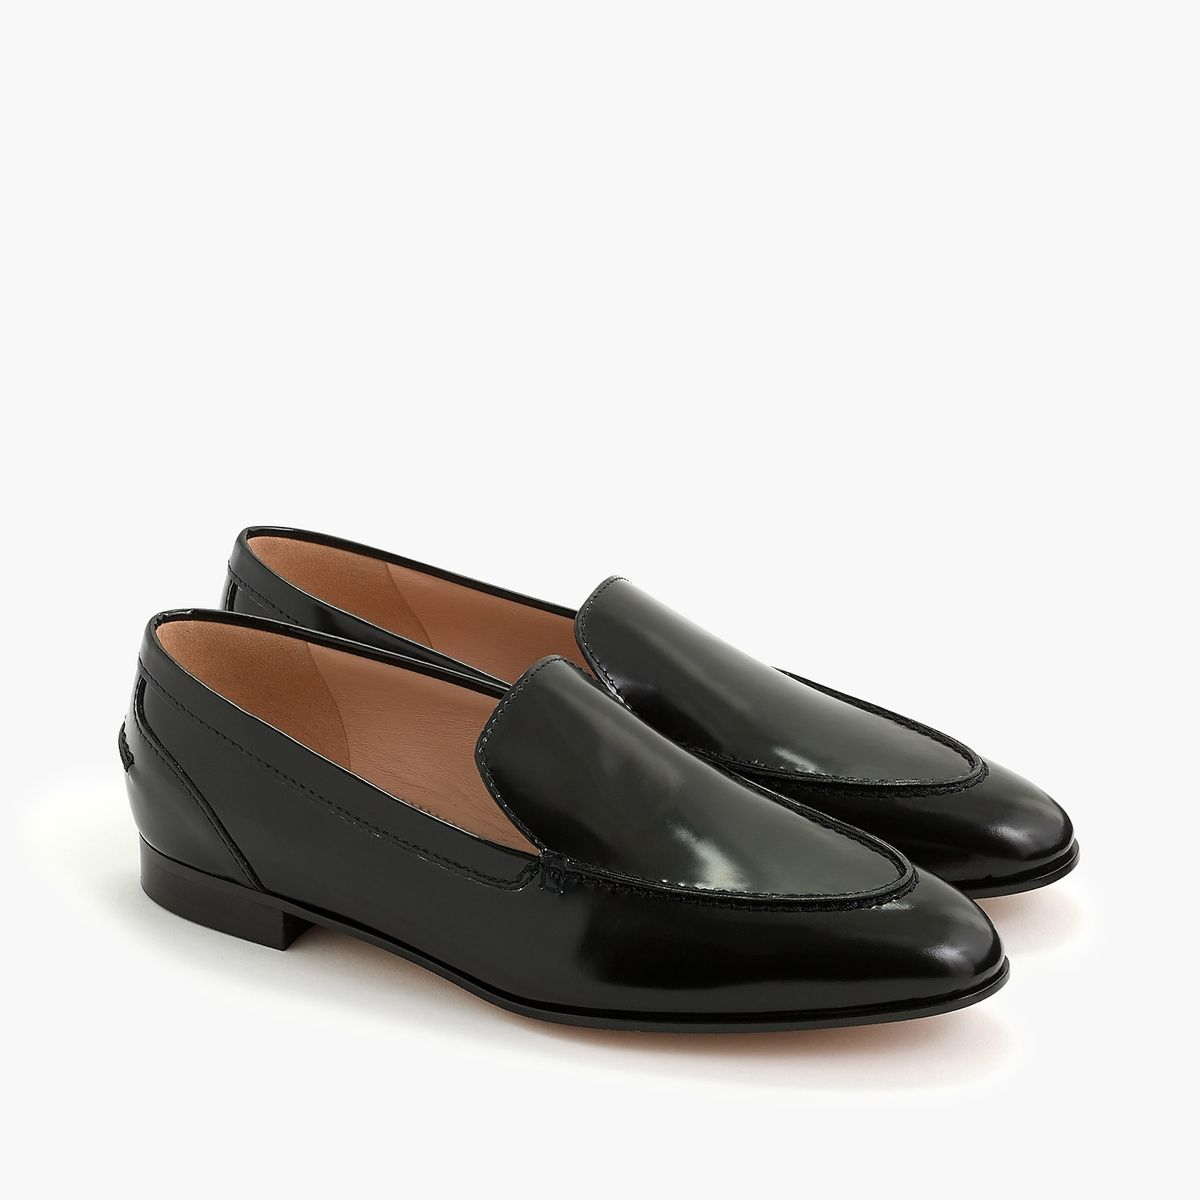 Shop J.Crew for the Academy loafers for Women. Find the best selection of Women Clothing available in-stores and online.